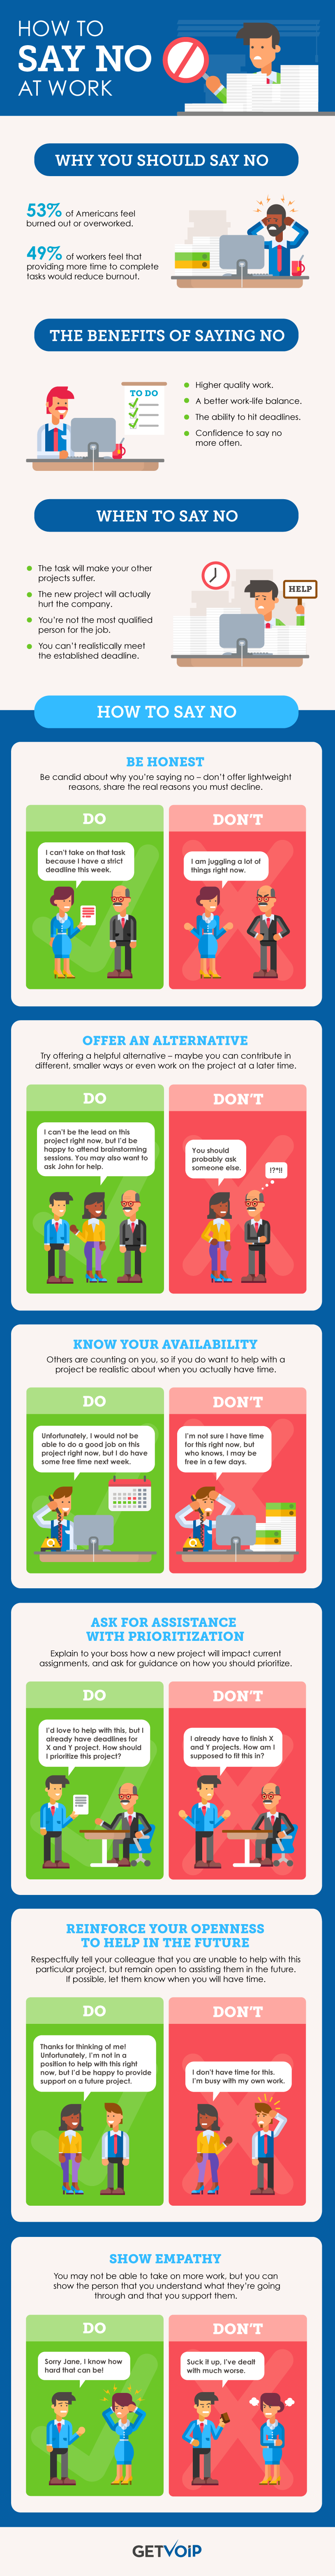 How To Respectfully Say No To Your Colleagues - #Infographic